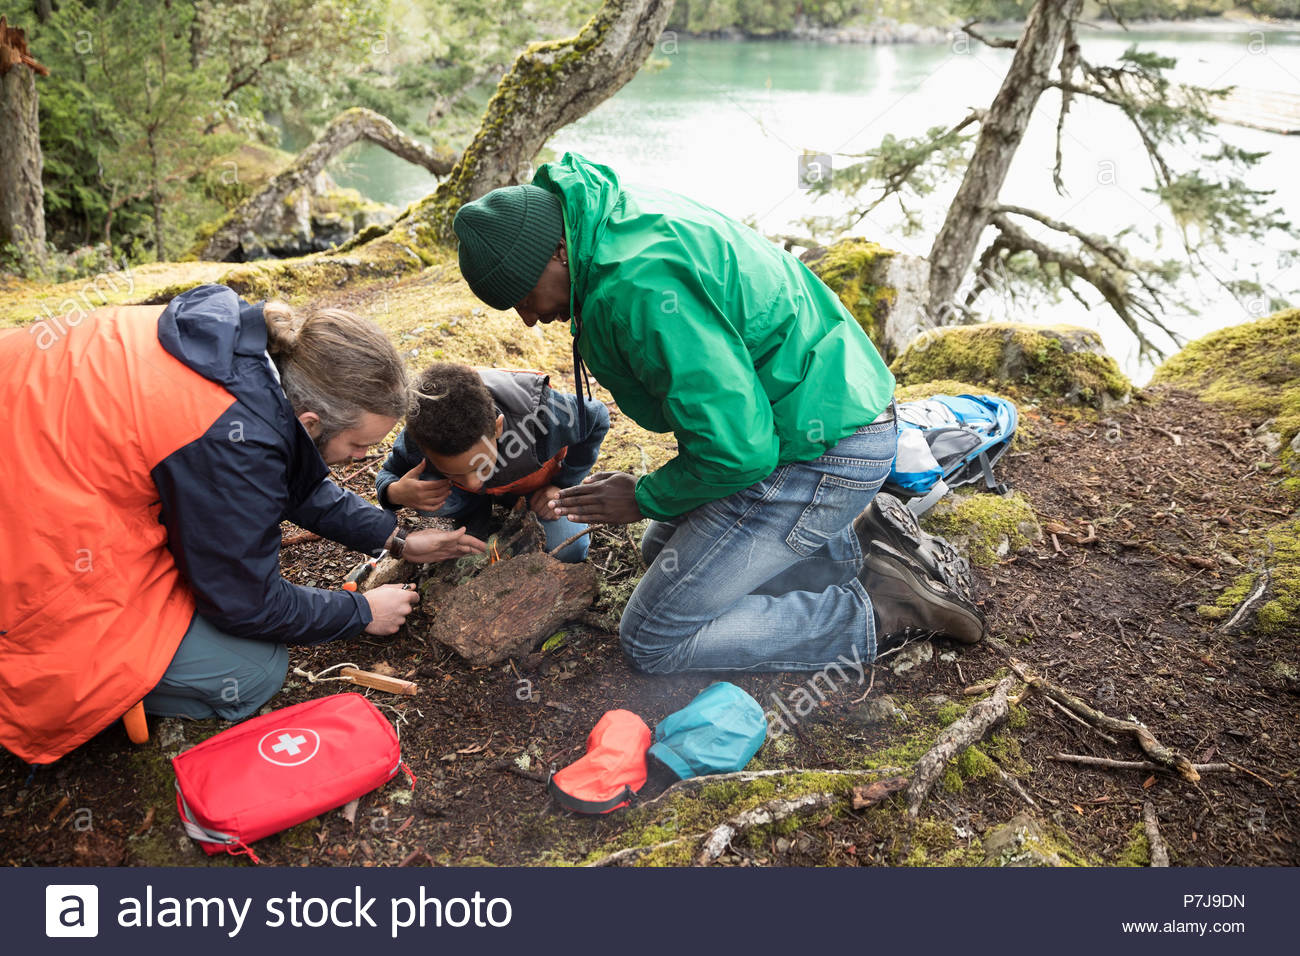 Trail guide teaching father and son how to build a campfire in woods - Stock Image